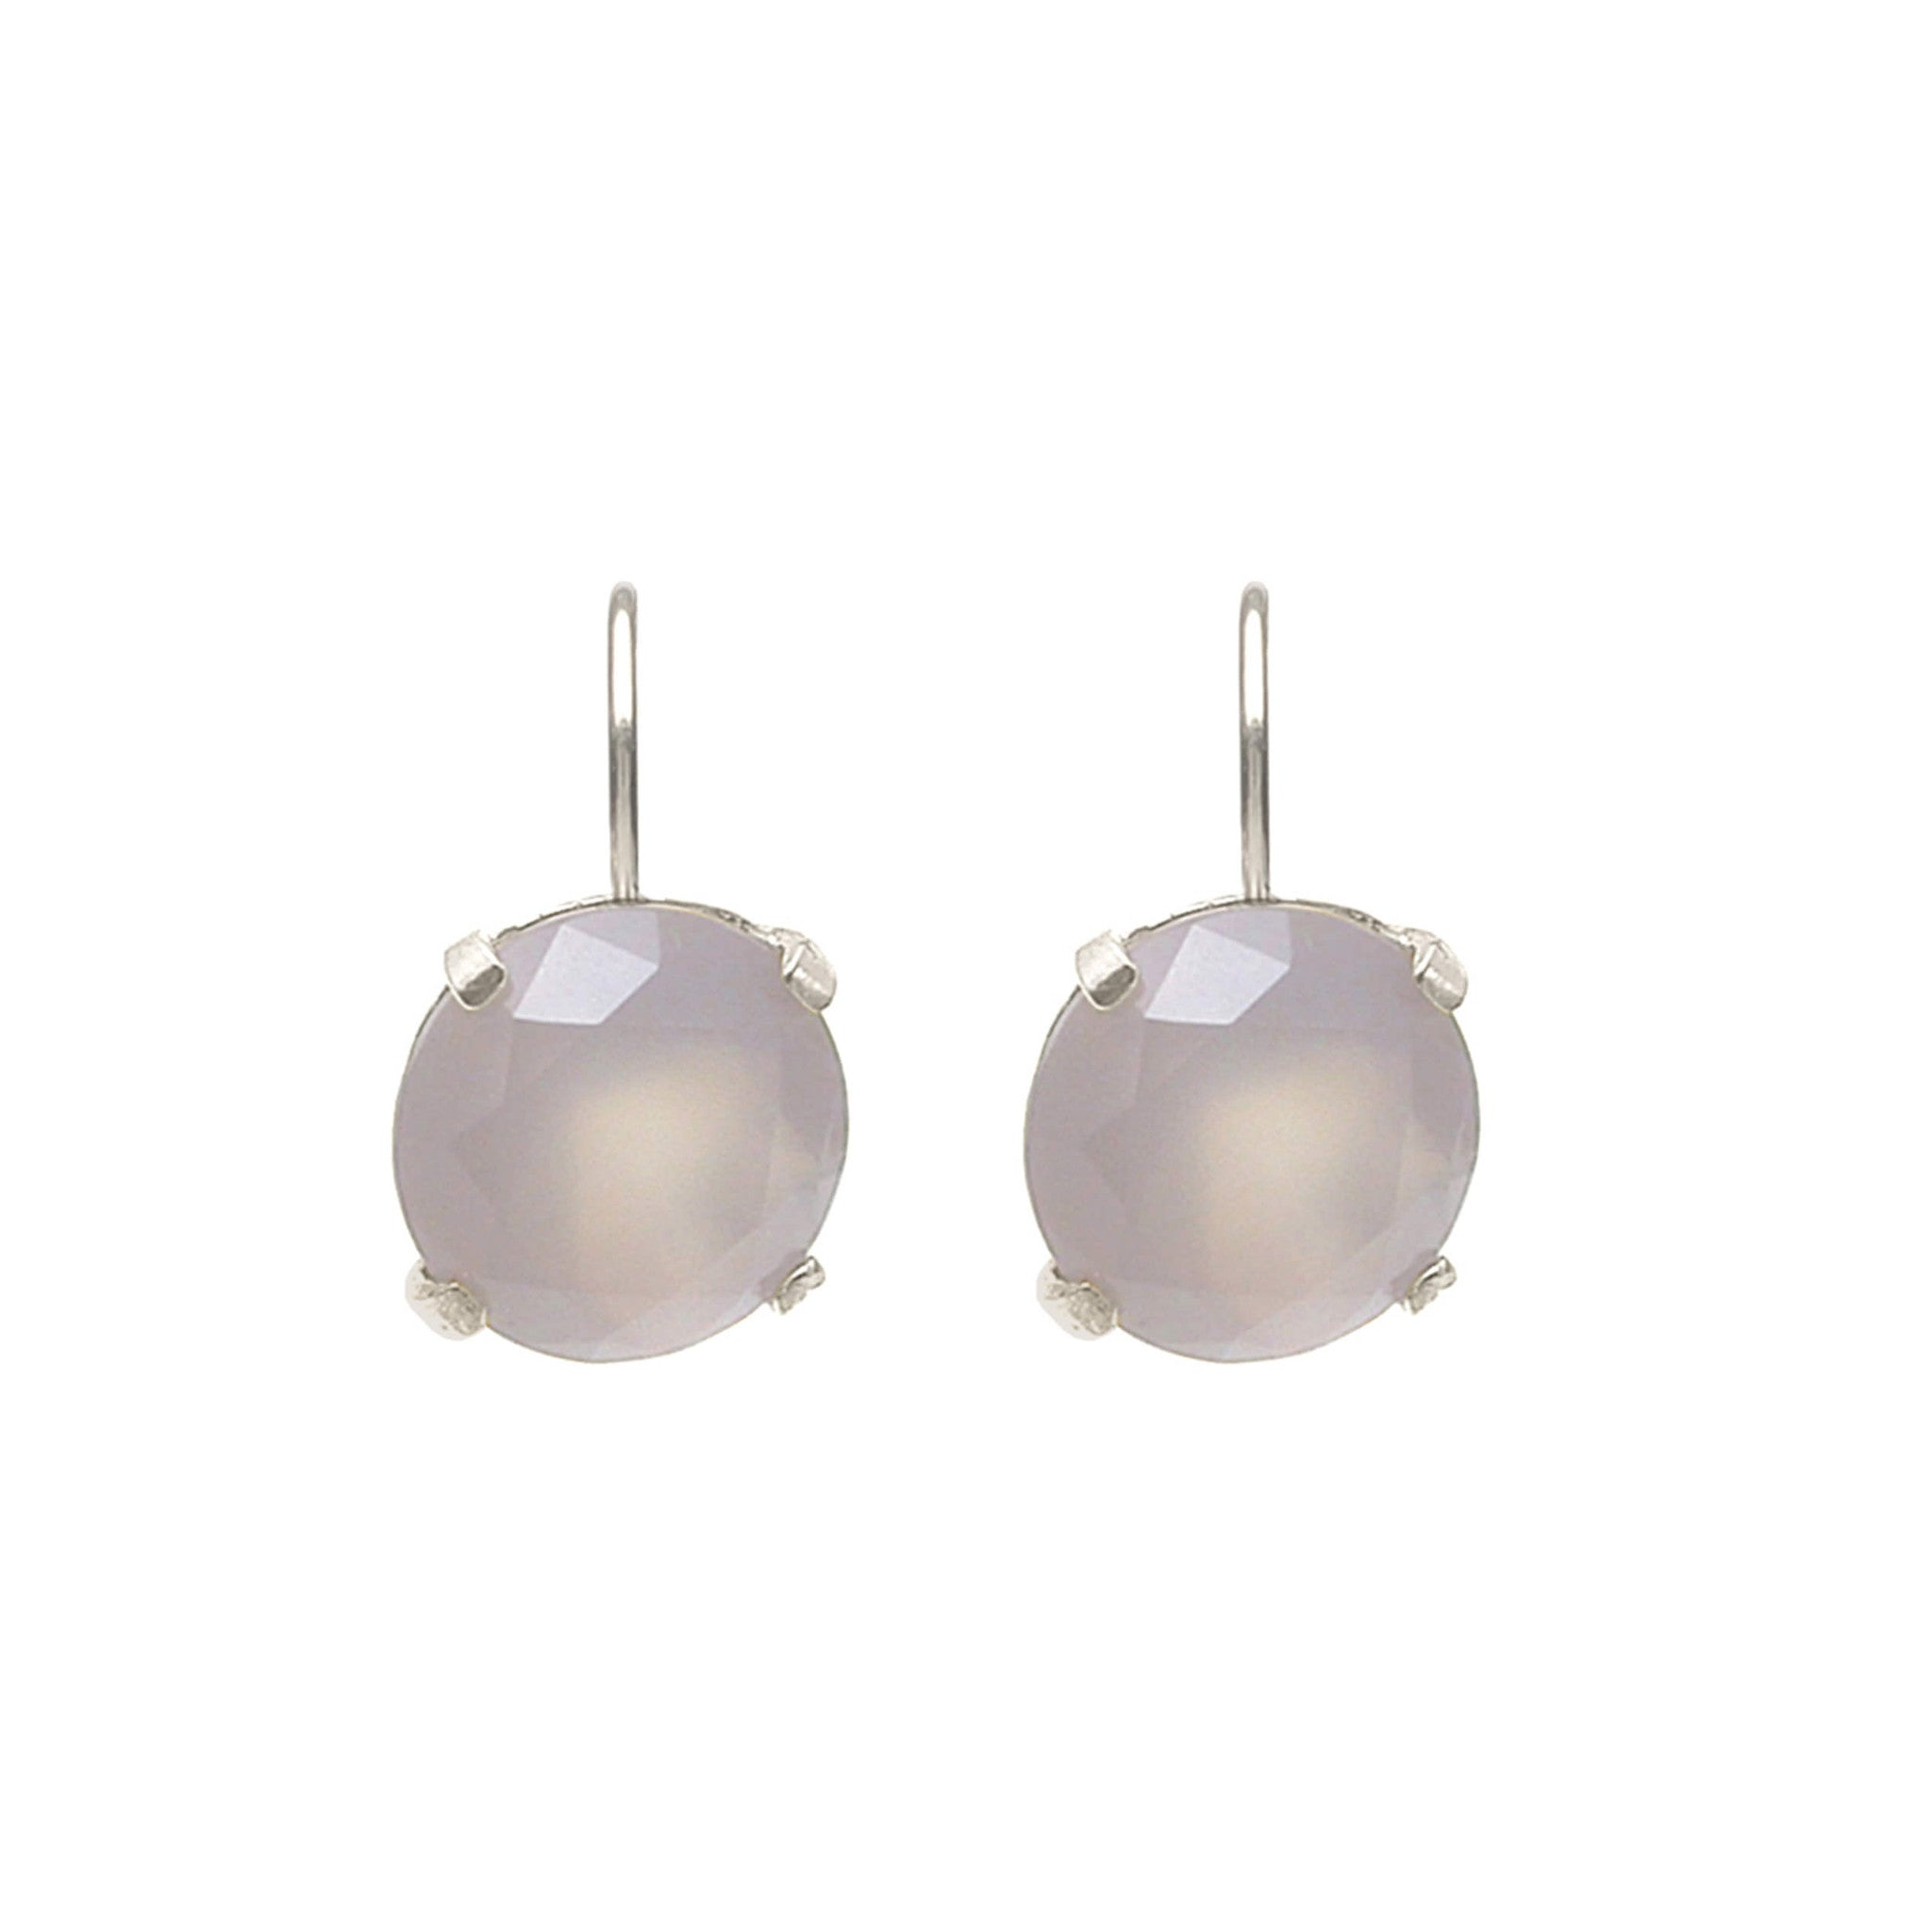 Sterling Silver leverback earrings with grey Agate